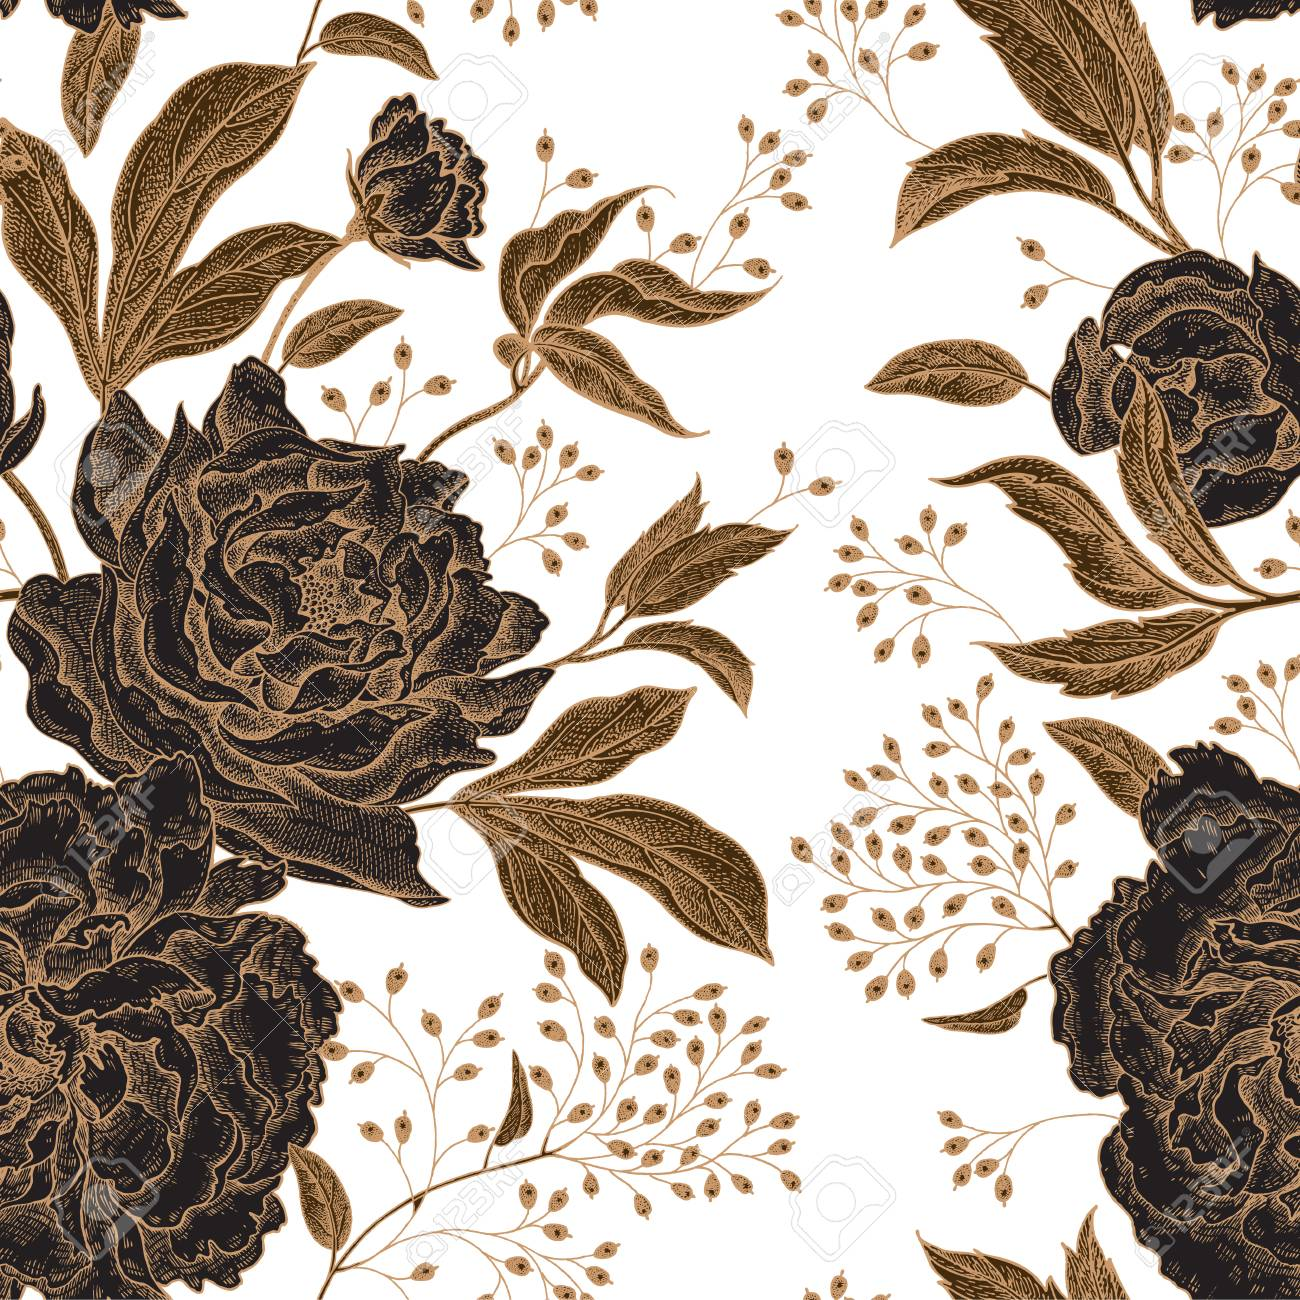 Peonies and roses. Floral vintage seamless pattern. Gold and black flowers, leaves, branches and berries on white background. Oriental style. Vector illustration art. For design textiles, paper. - 97691753